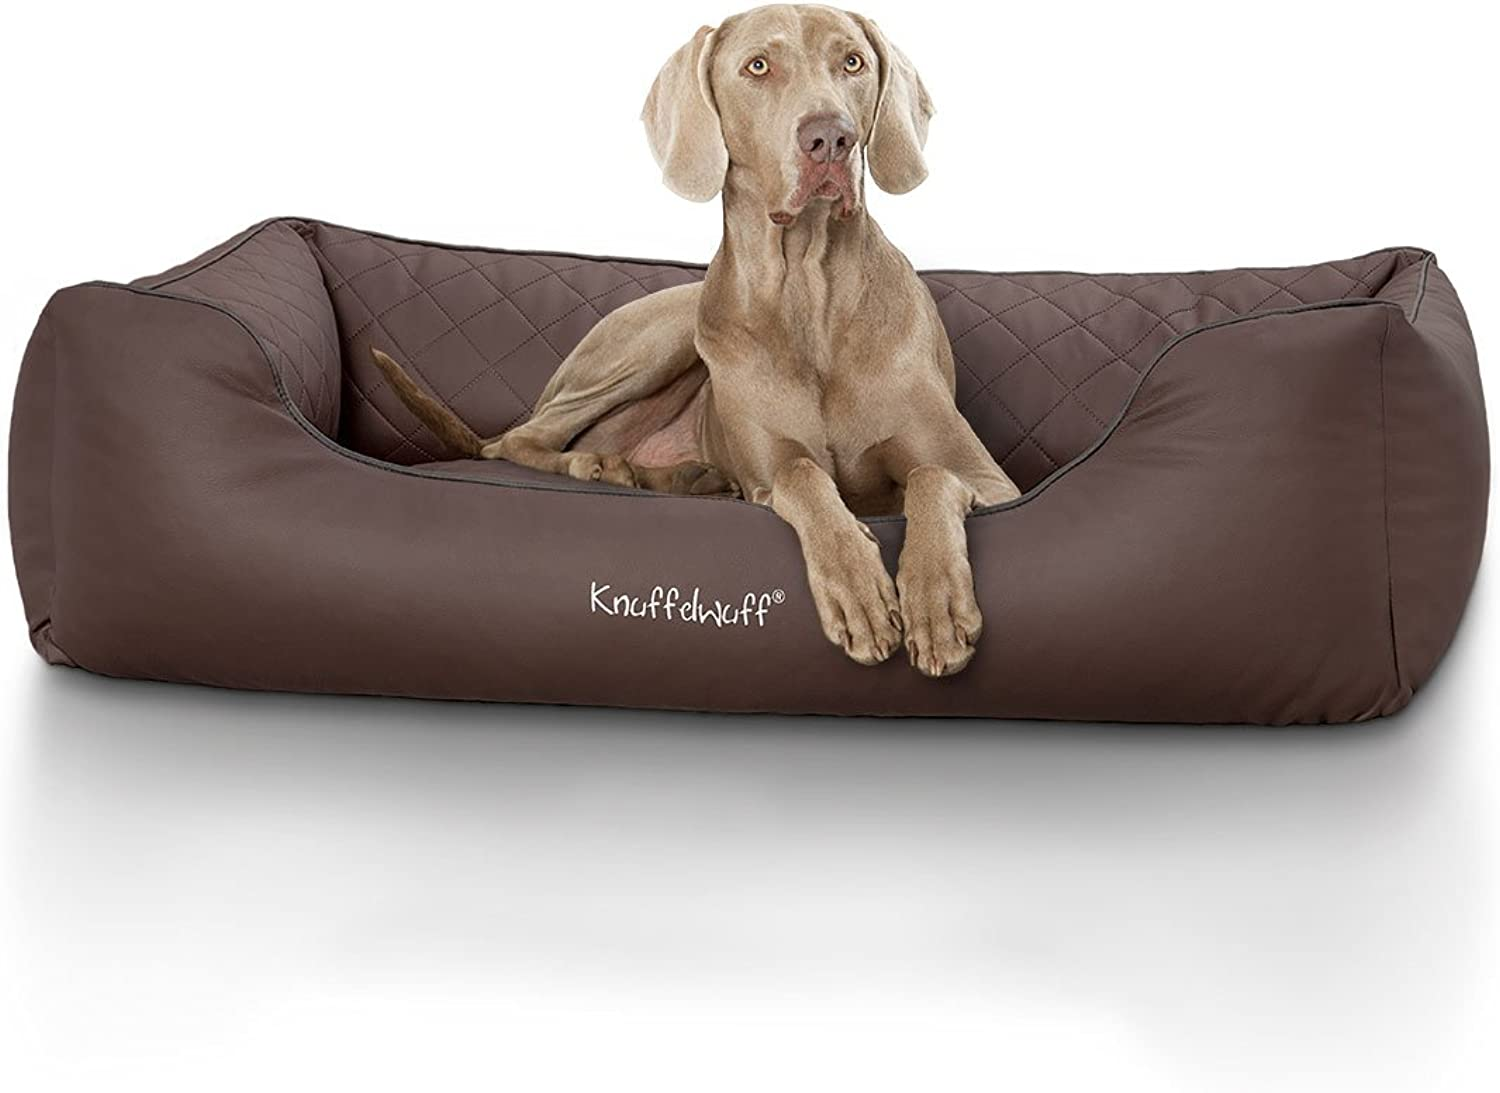 Knuffelwuff Quilted Dog Bed Made of Synthetic Milan Leather, XLarge, 105 x 75 cm, Brown Beige